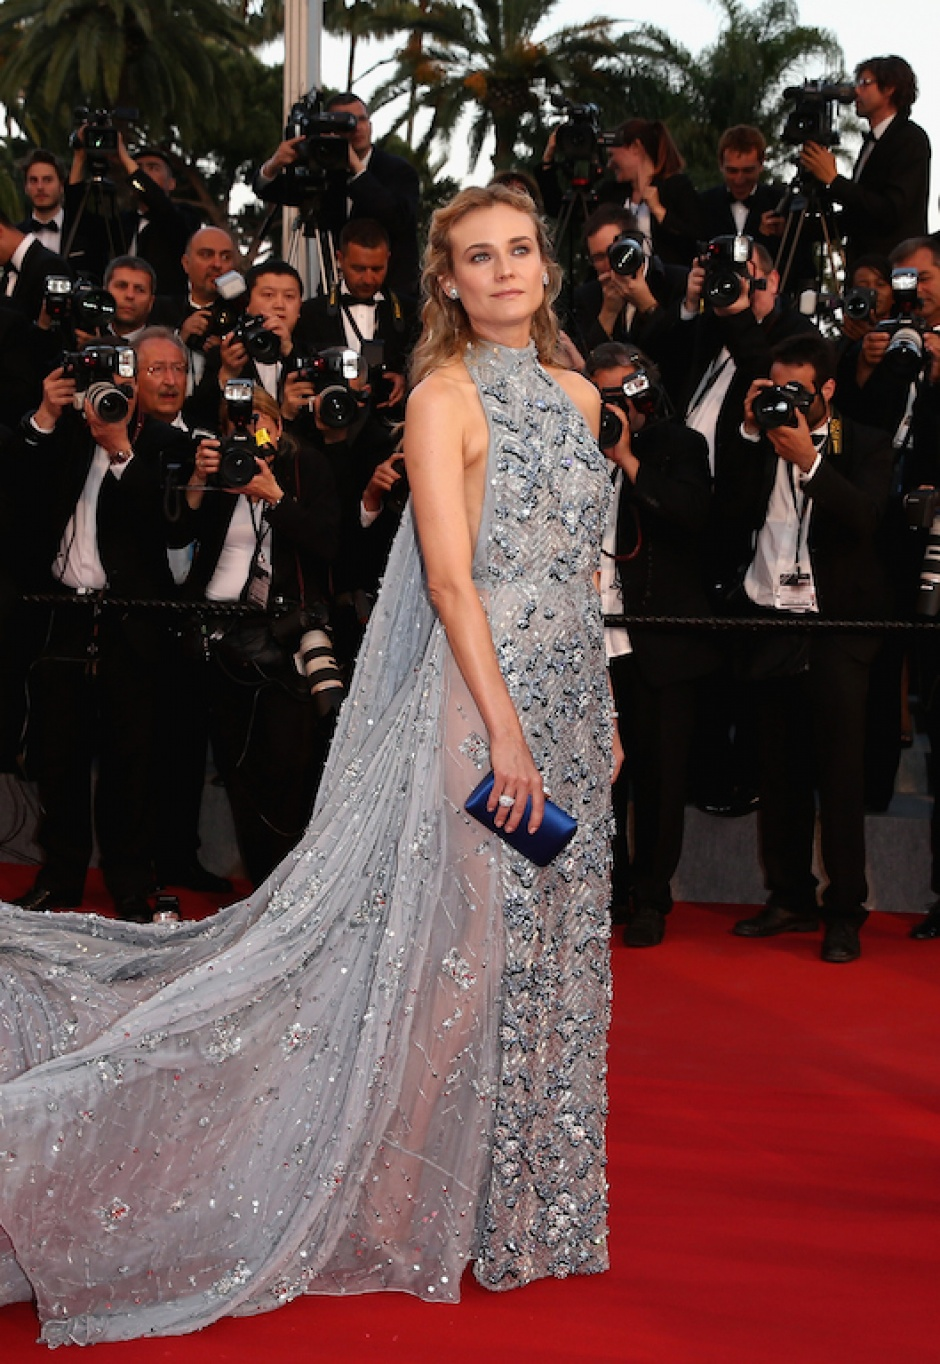 Diane Kruger wearing a Prada gown at the Cannes Film Festival